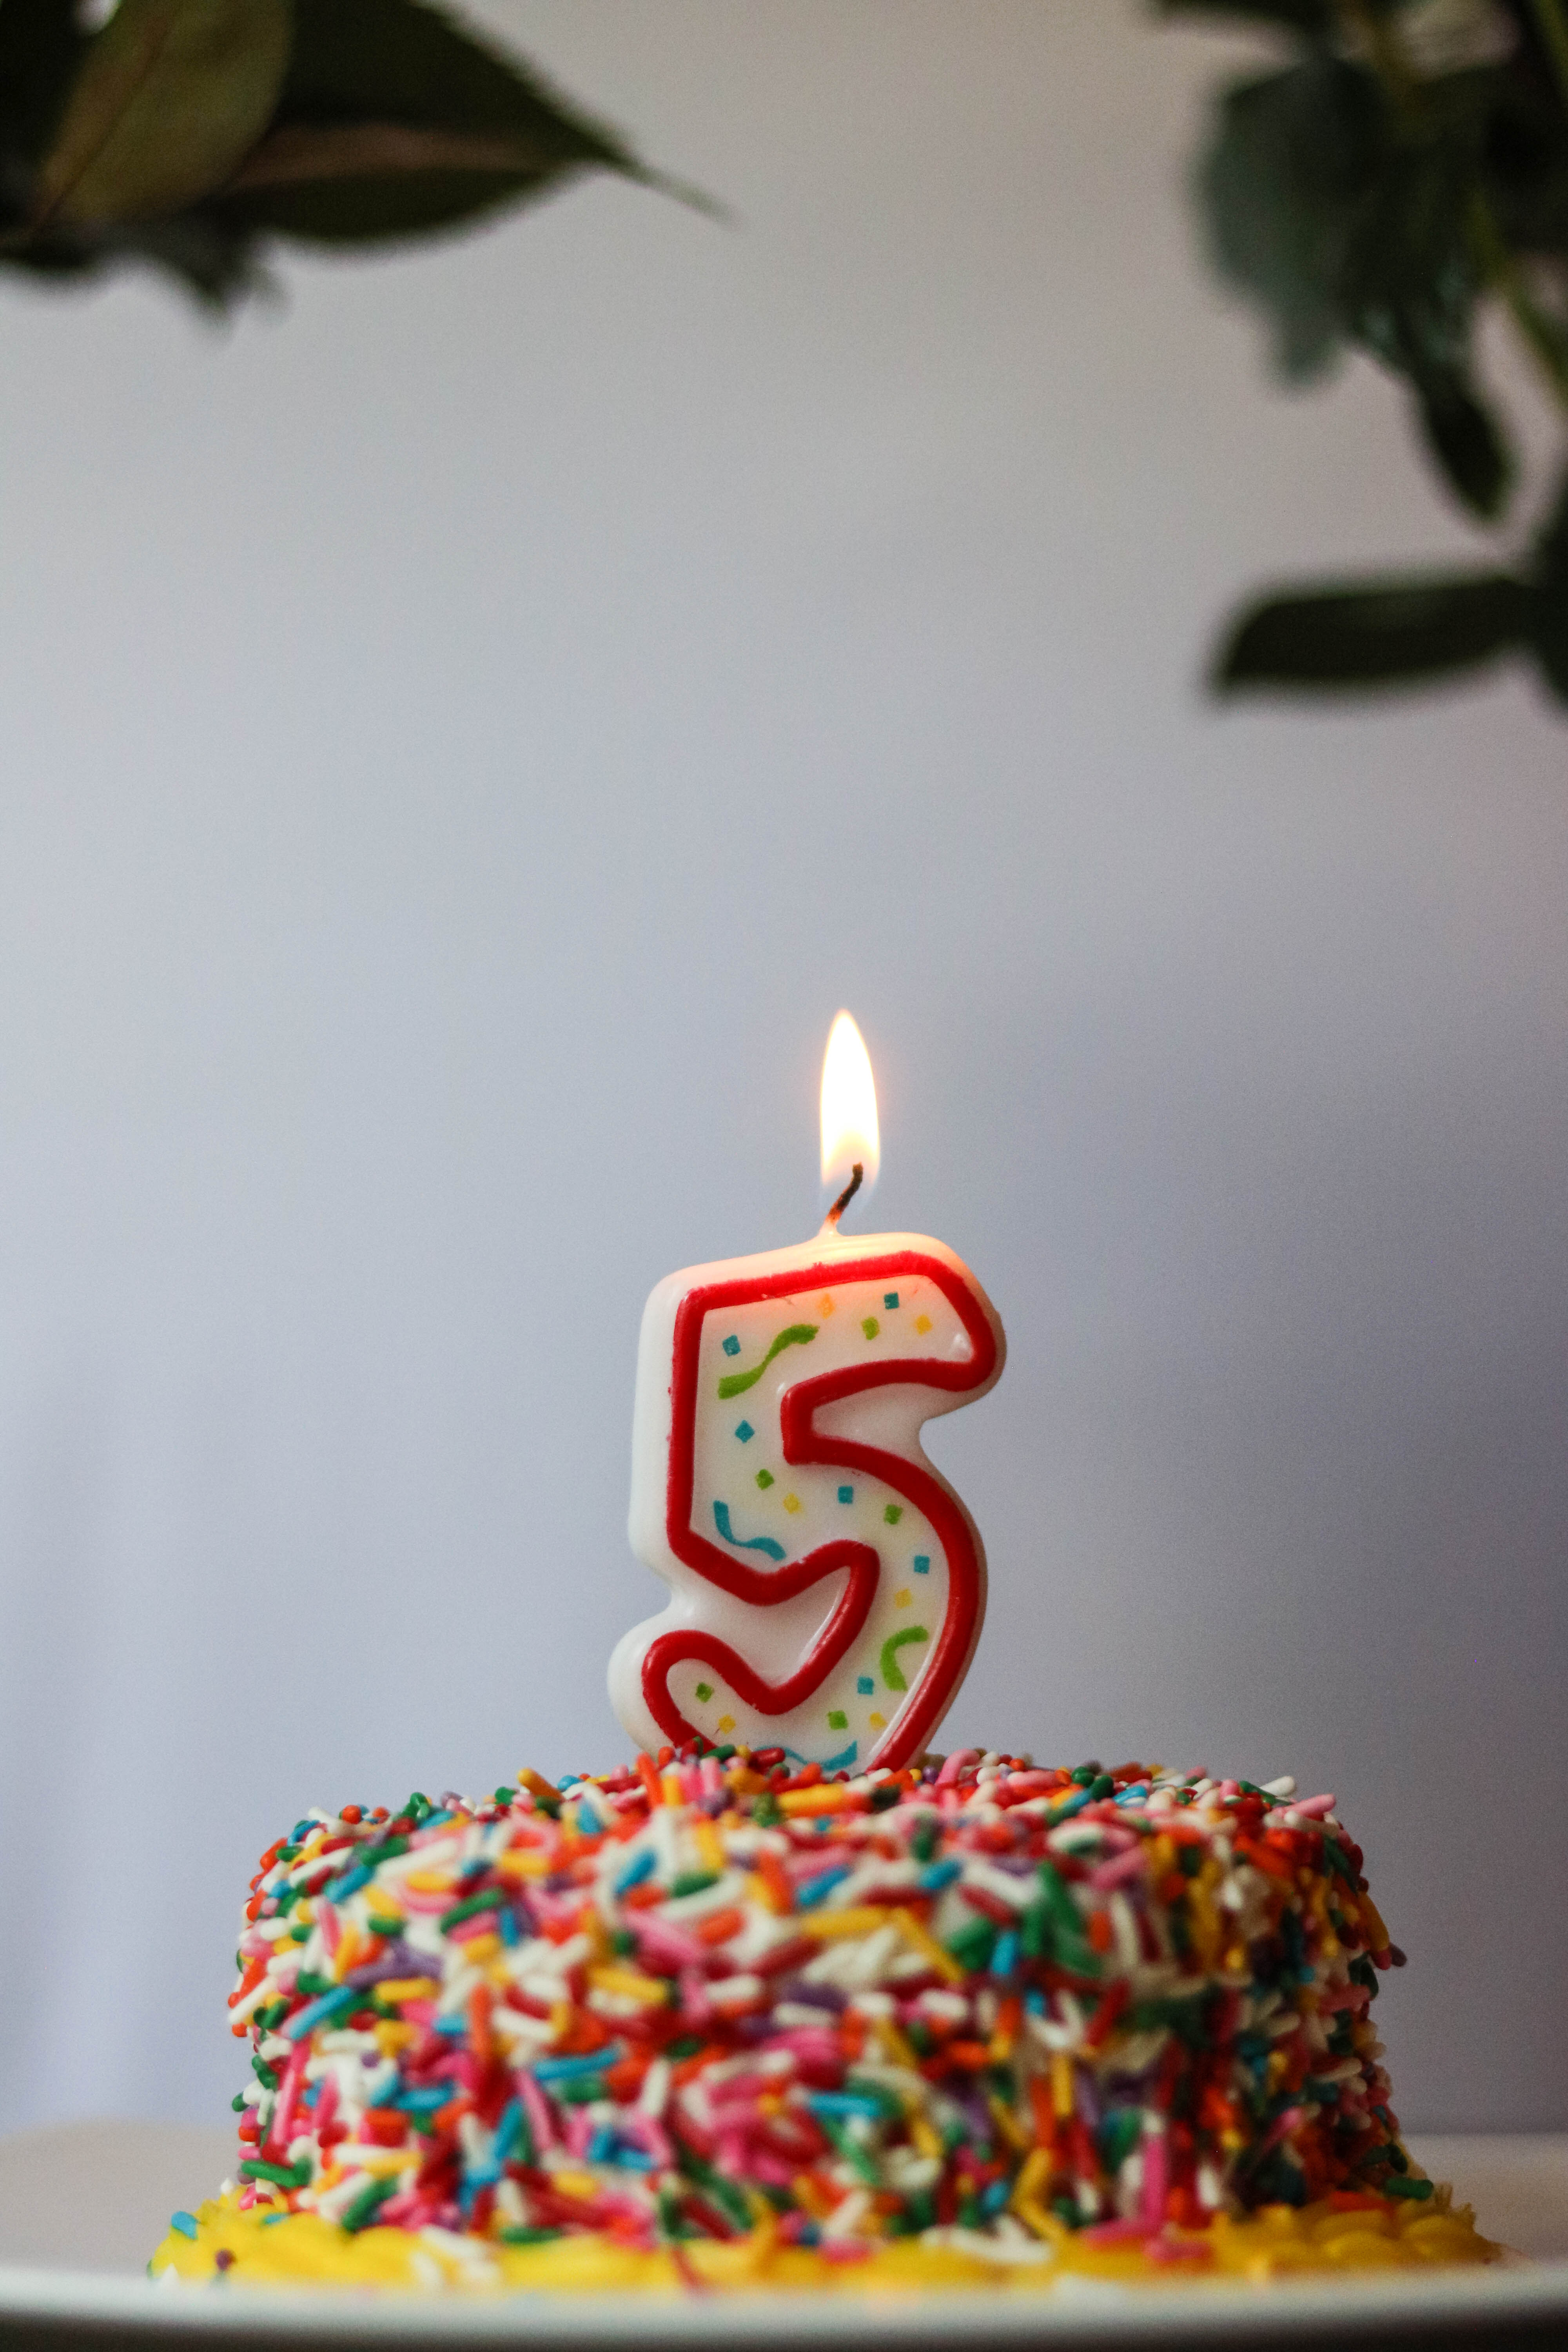 Happy Birthday, Coming Up Roses! Celebrating my 5-year Blogiversary with a look back at the highest highs and lowest lows (and everything in between).